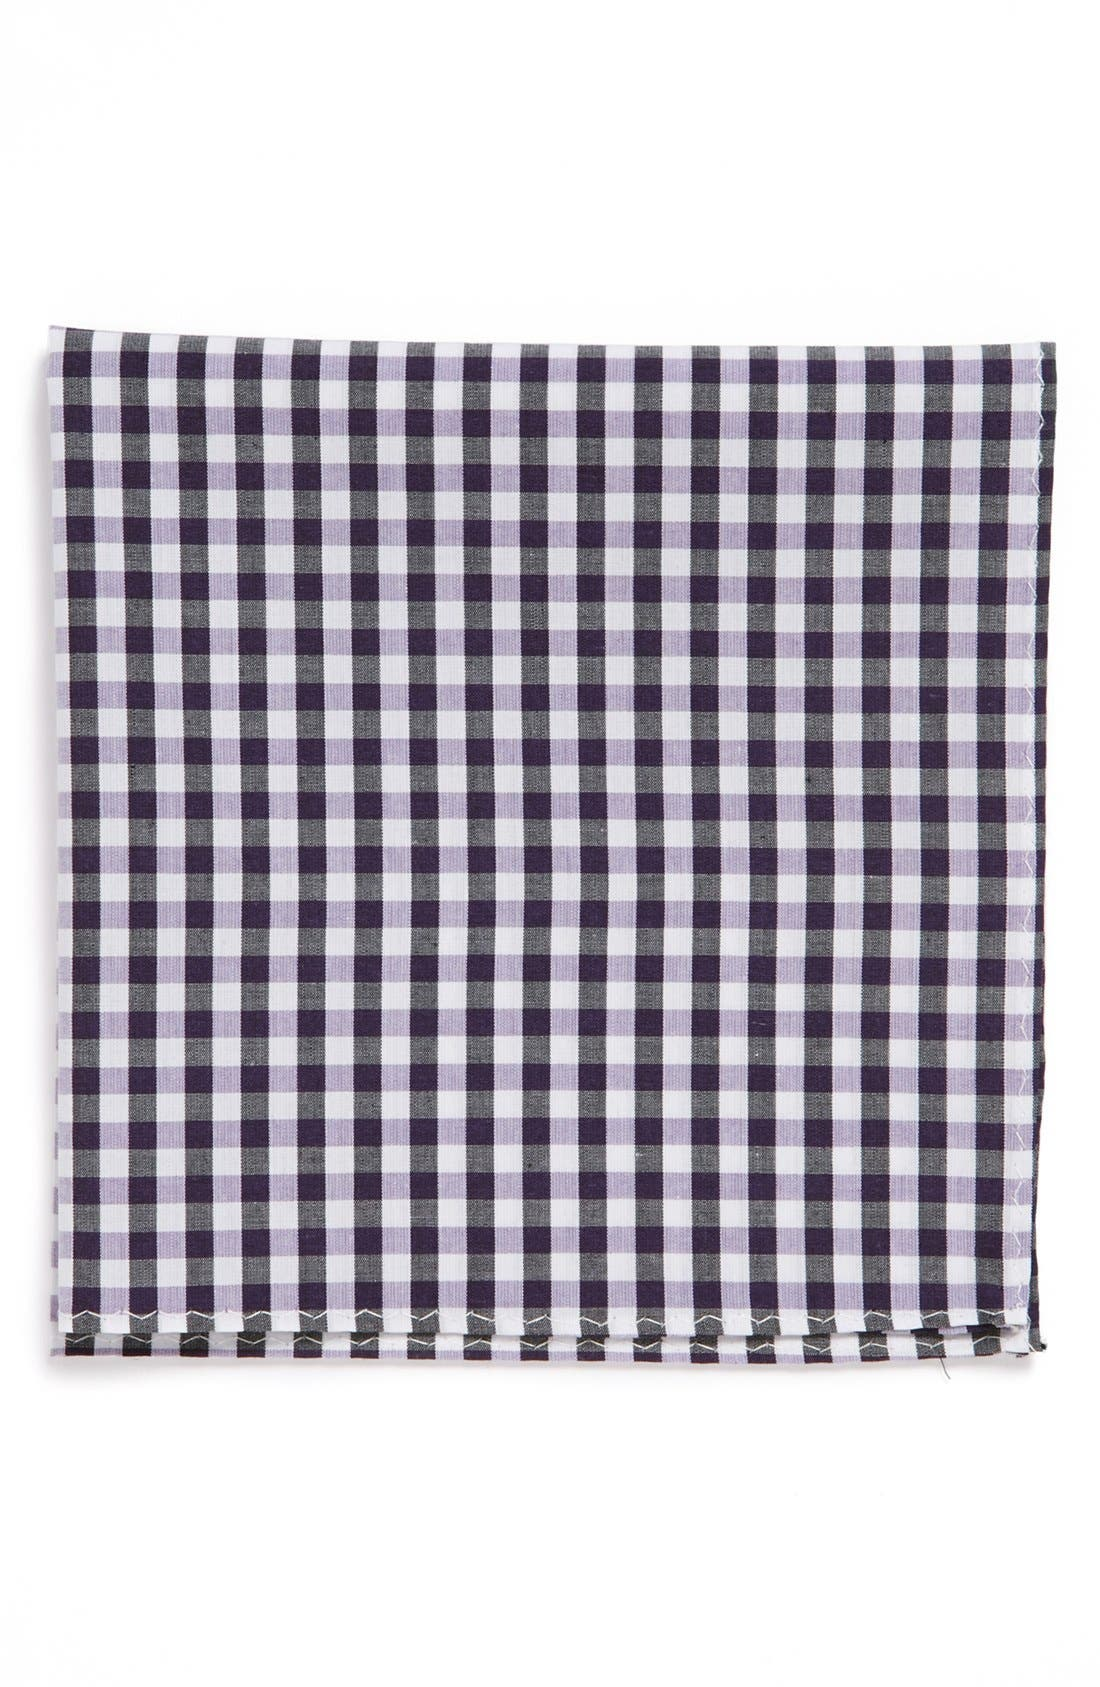 Alternate Image 1 Selected - Original Penguin 'Cohen Gingham' Cotton Pocket Square